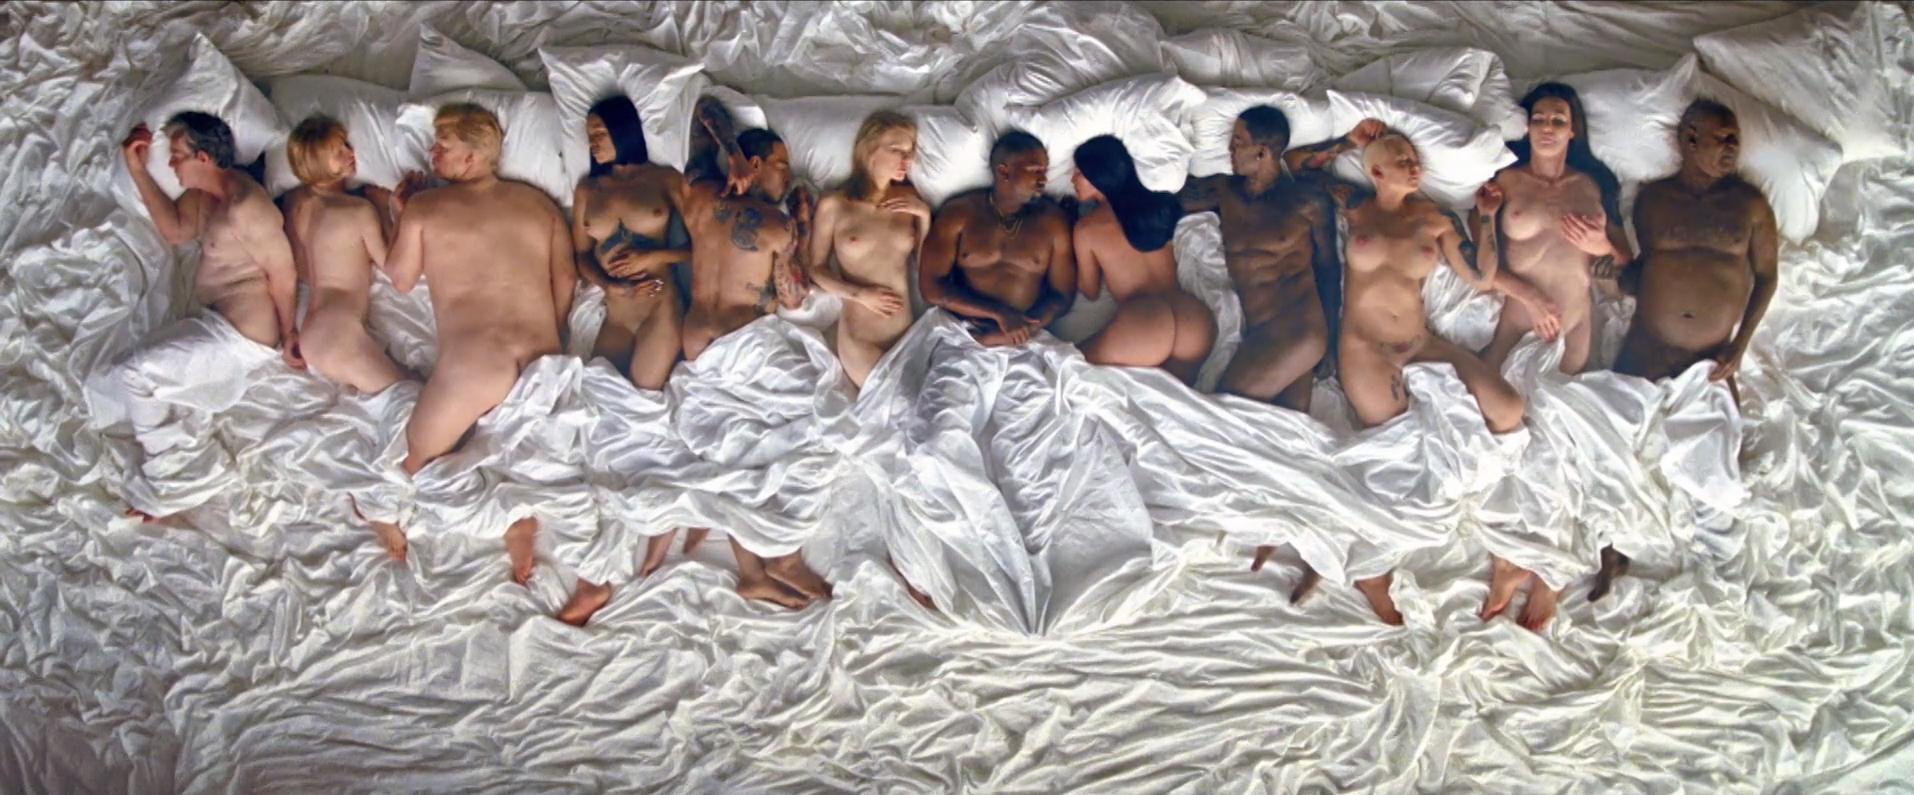 Kanye West's video for Famous is damn genius clickbait